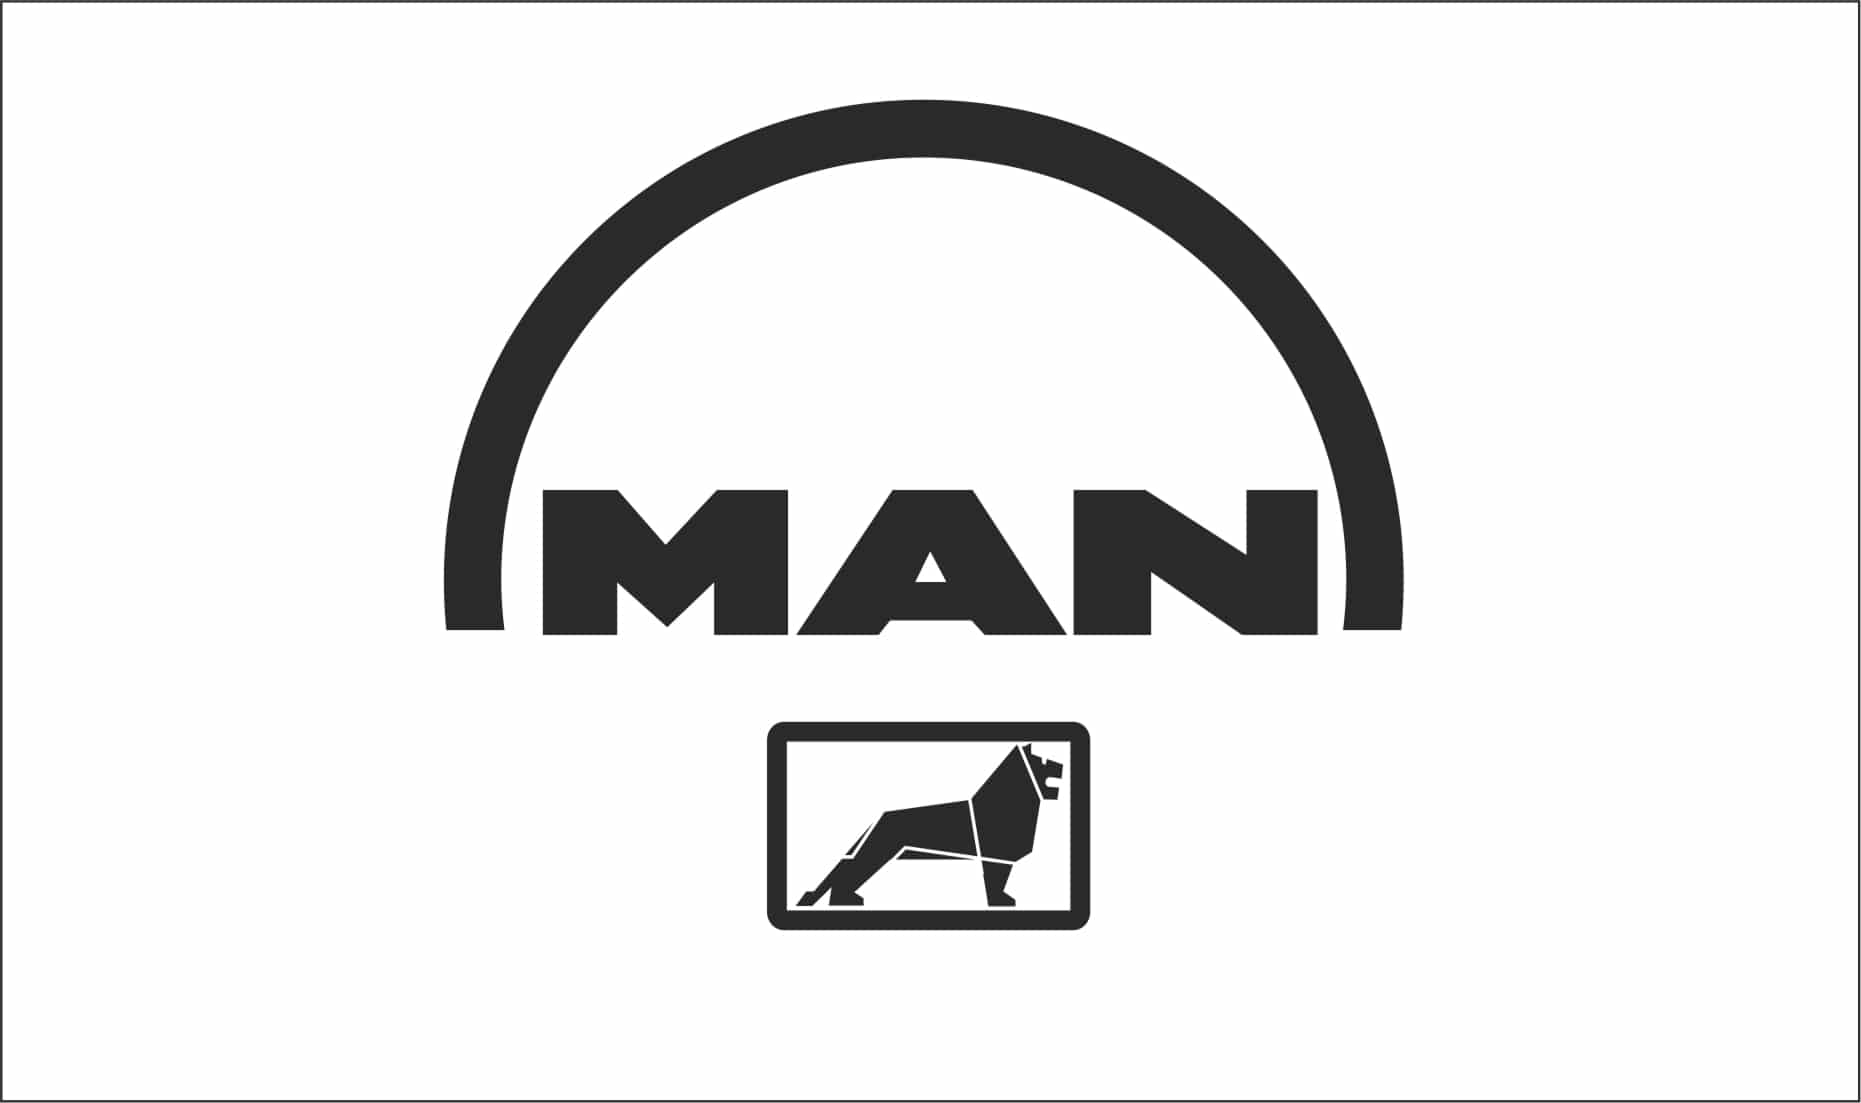 Man truck lorry logo sticker